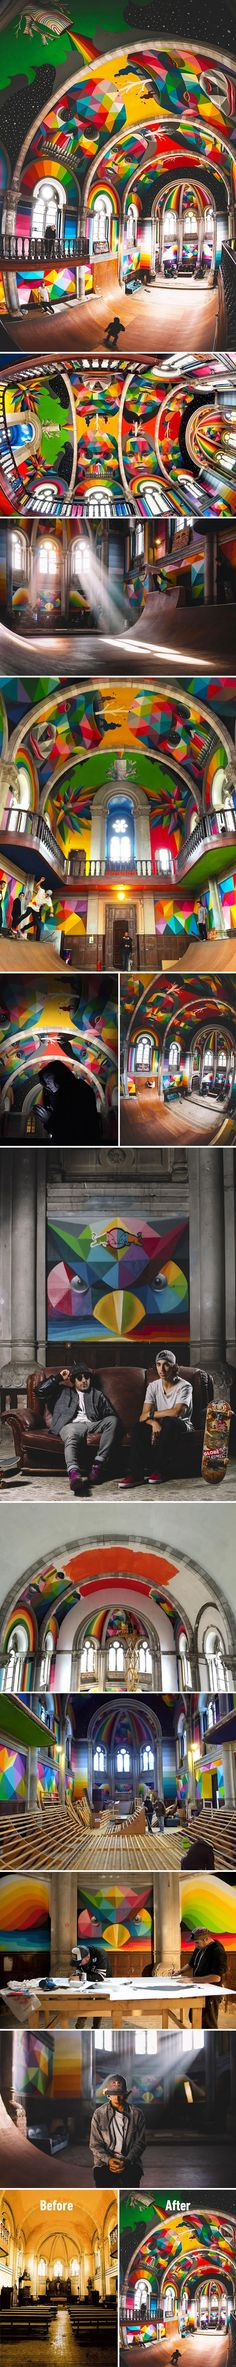 Artists Transformed A 100-Year-Old Church Into A Skate Park With Colorful Graffiti (By La Iglesia Skate)